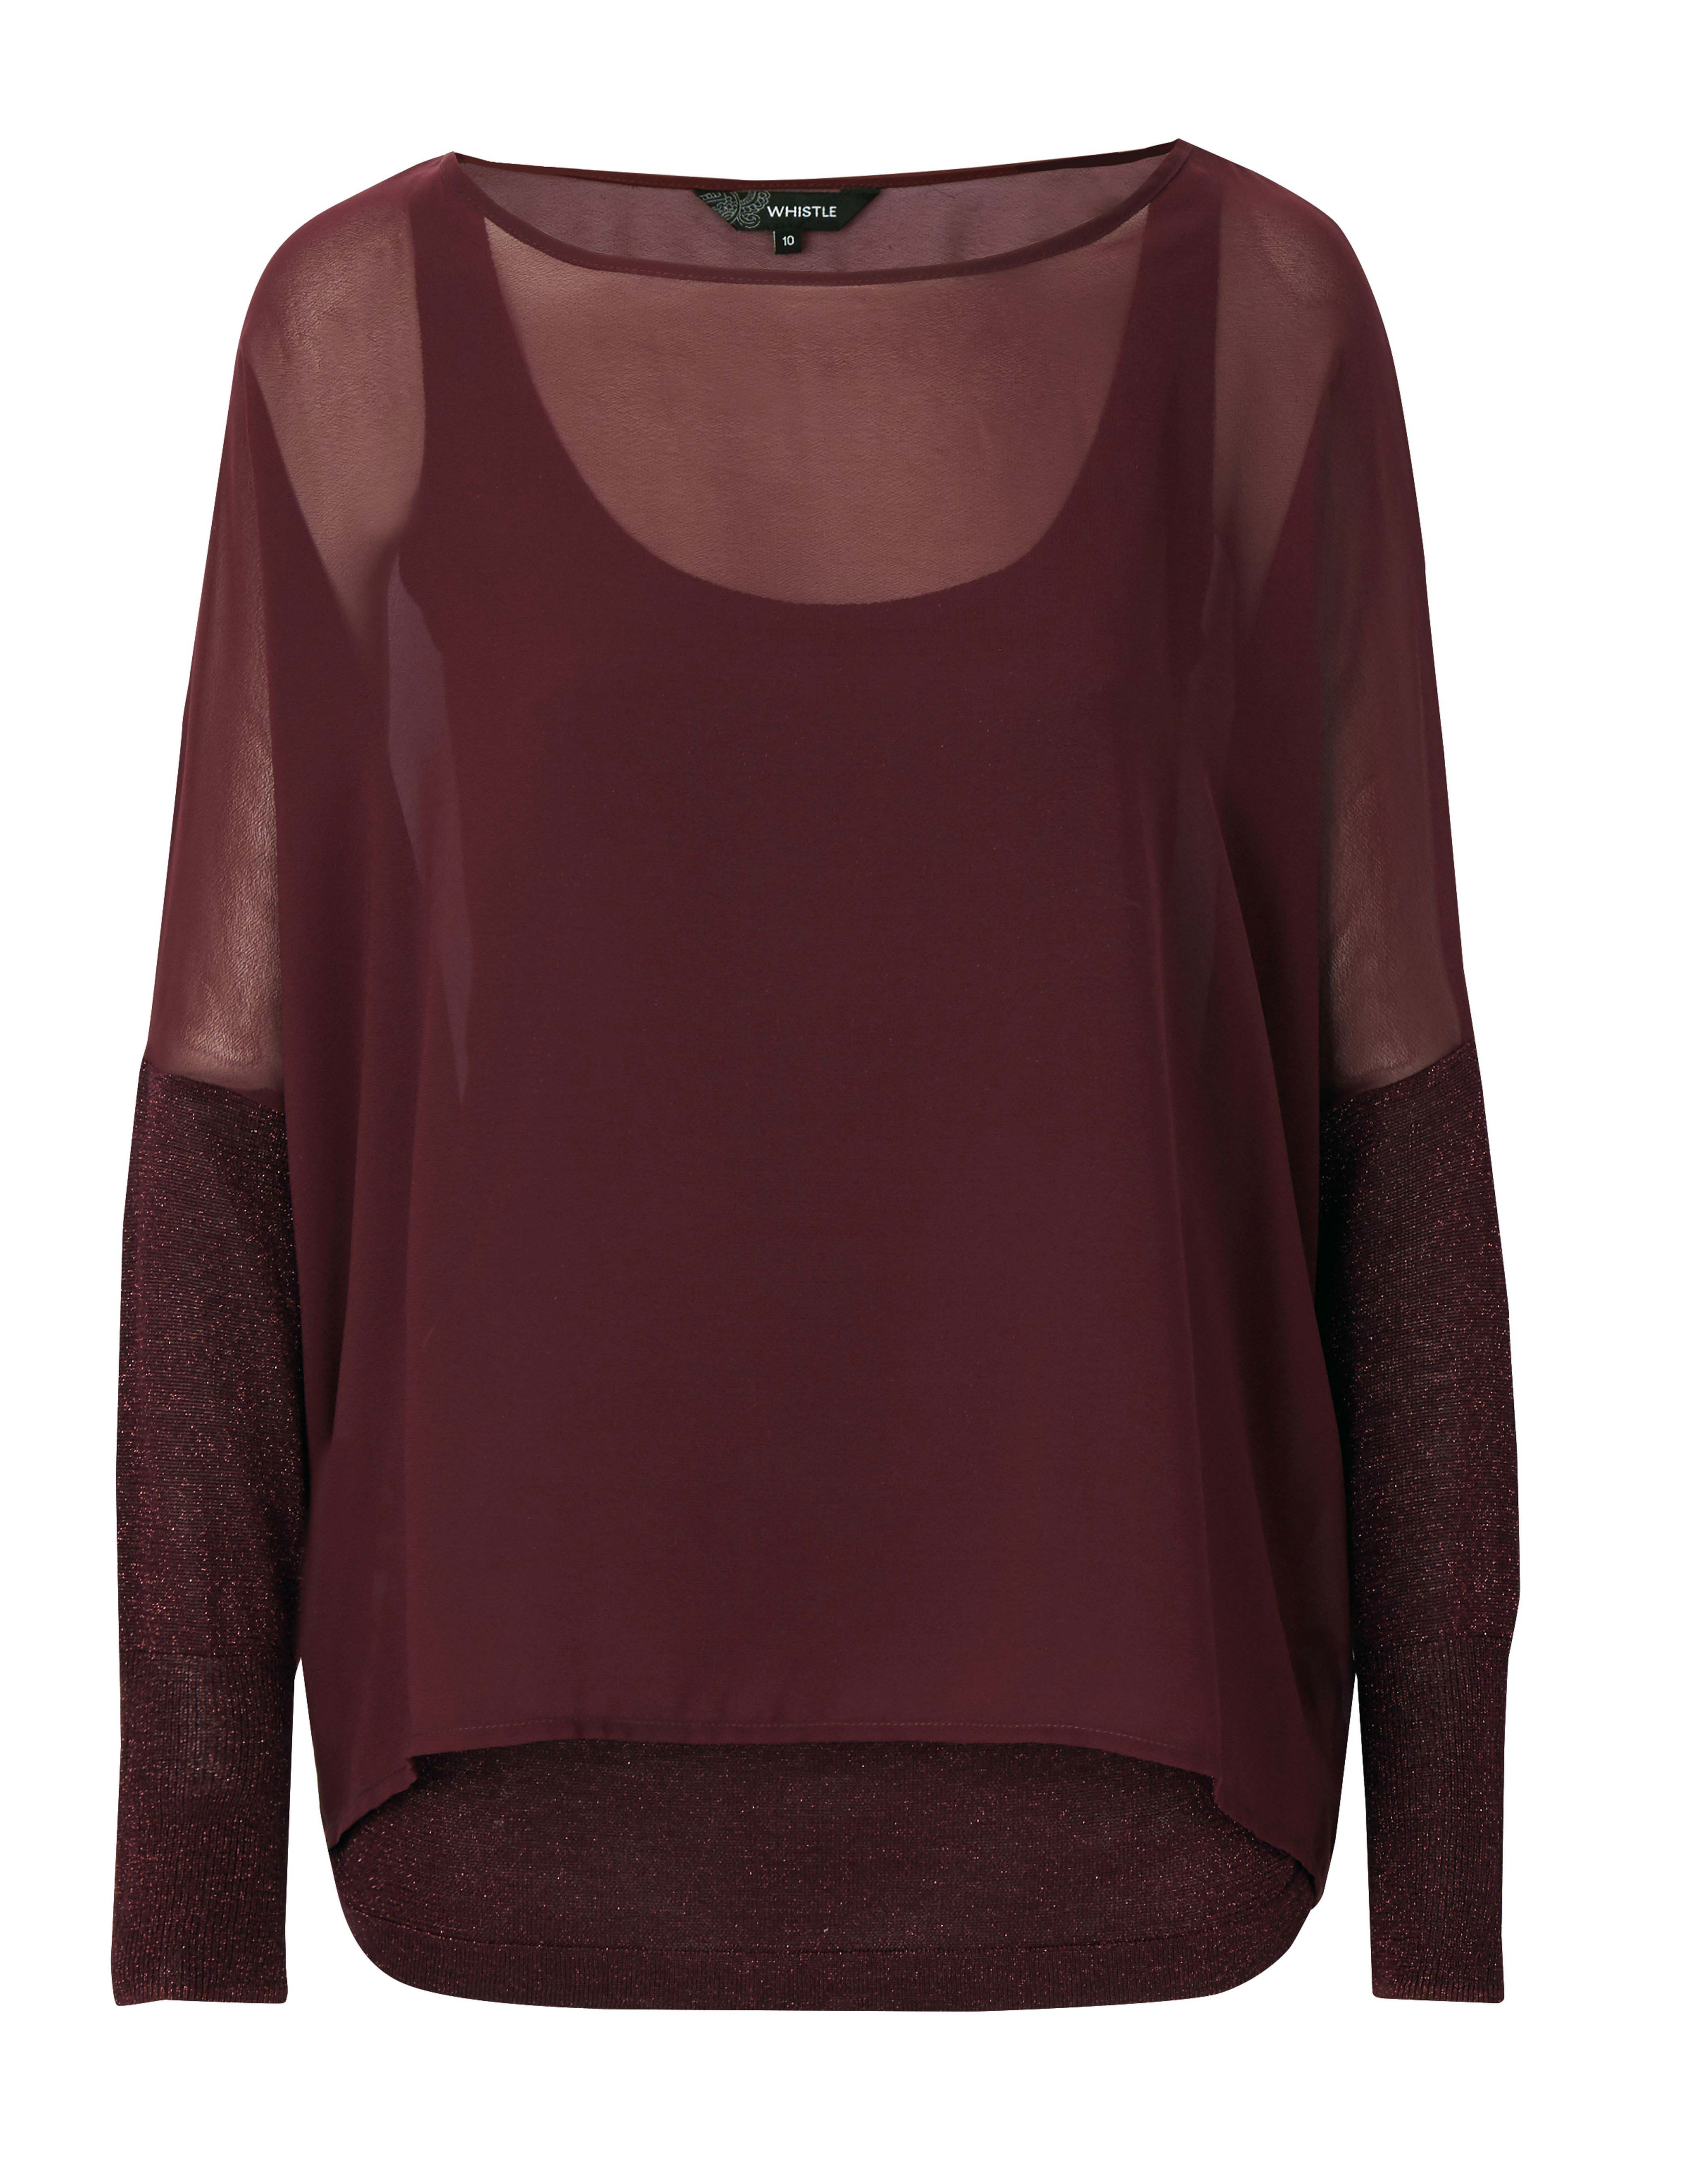 6085434 Whistle Double Layered Luxe Top Berry $79.99 Instore 22 Feb 2016